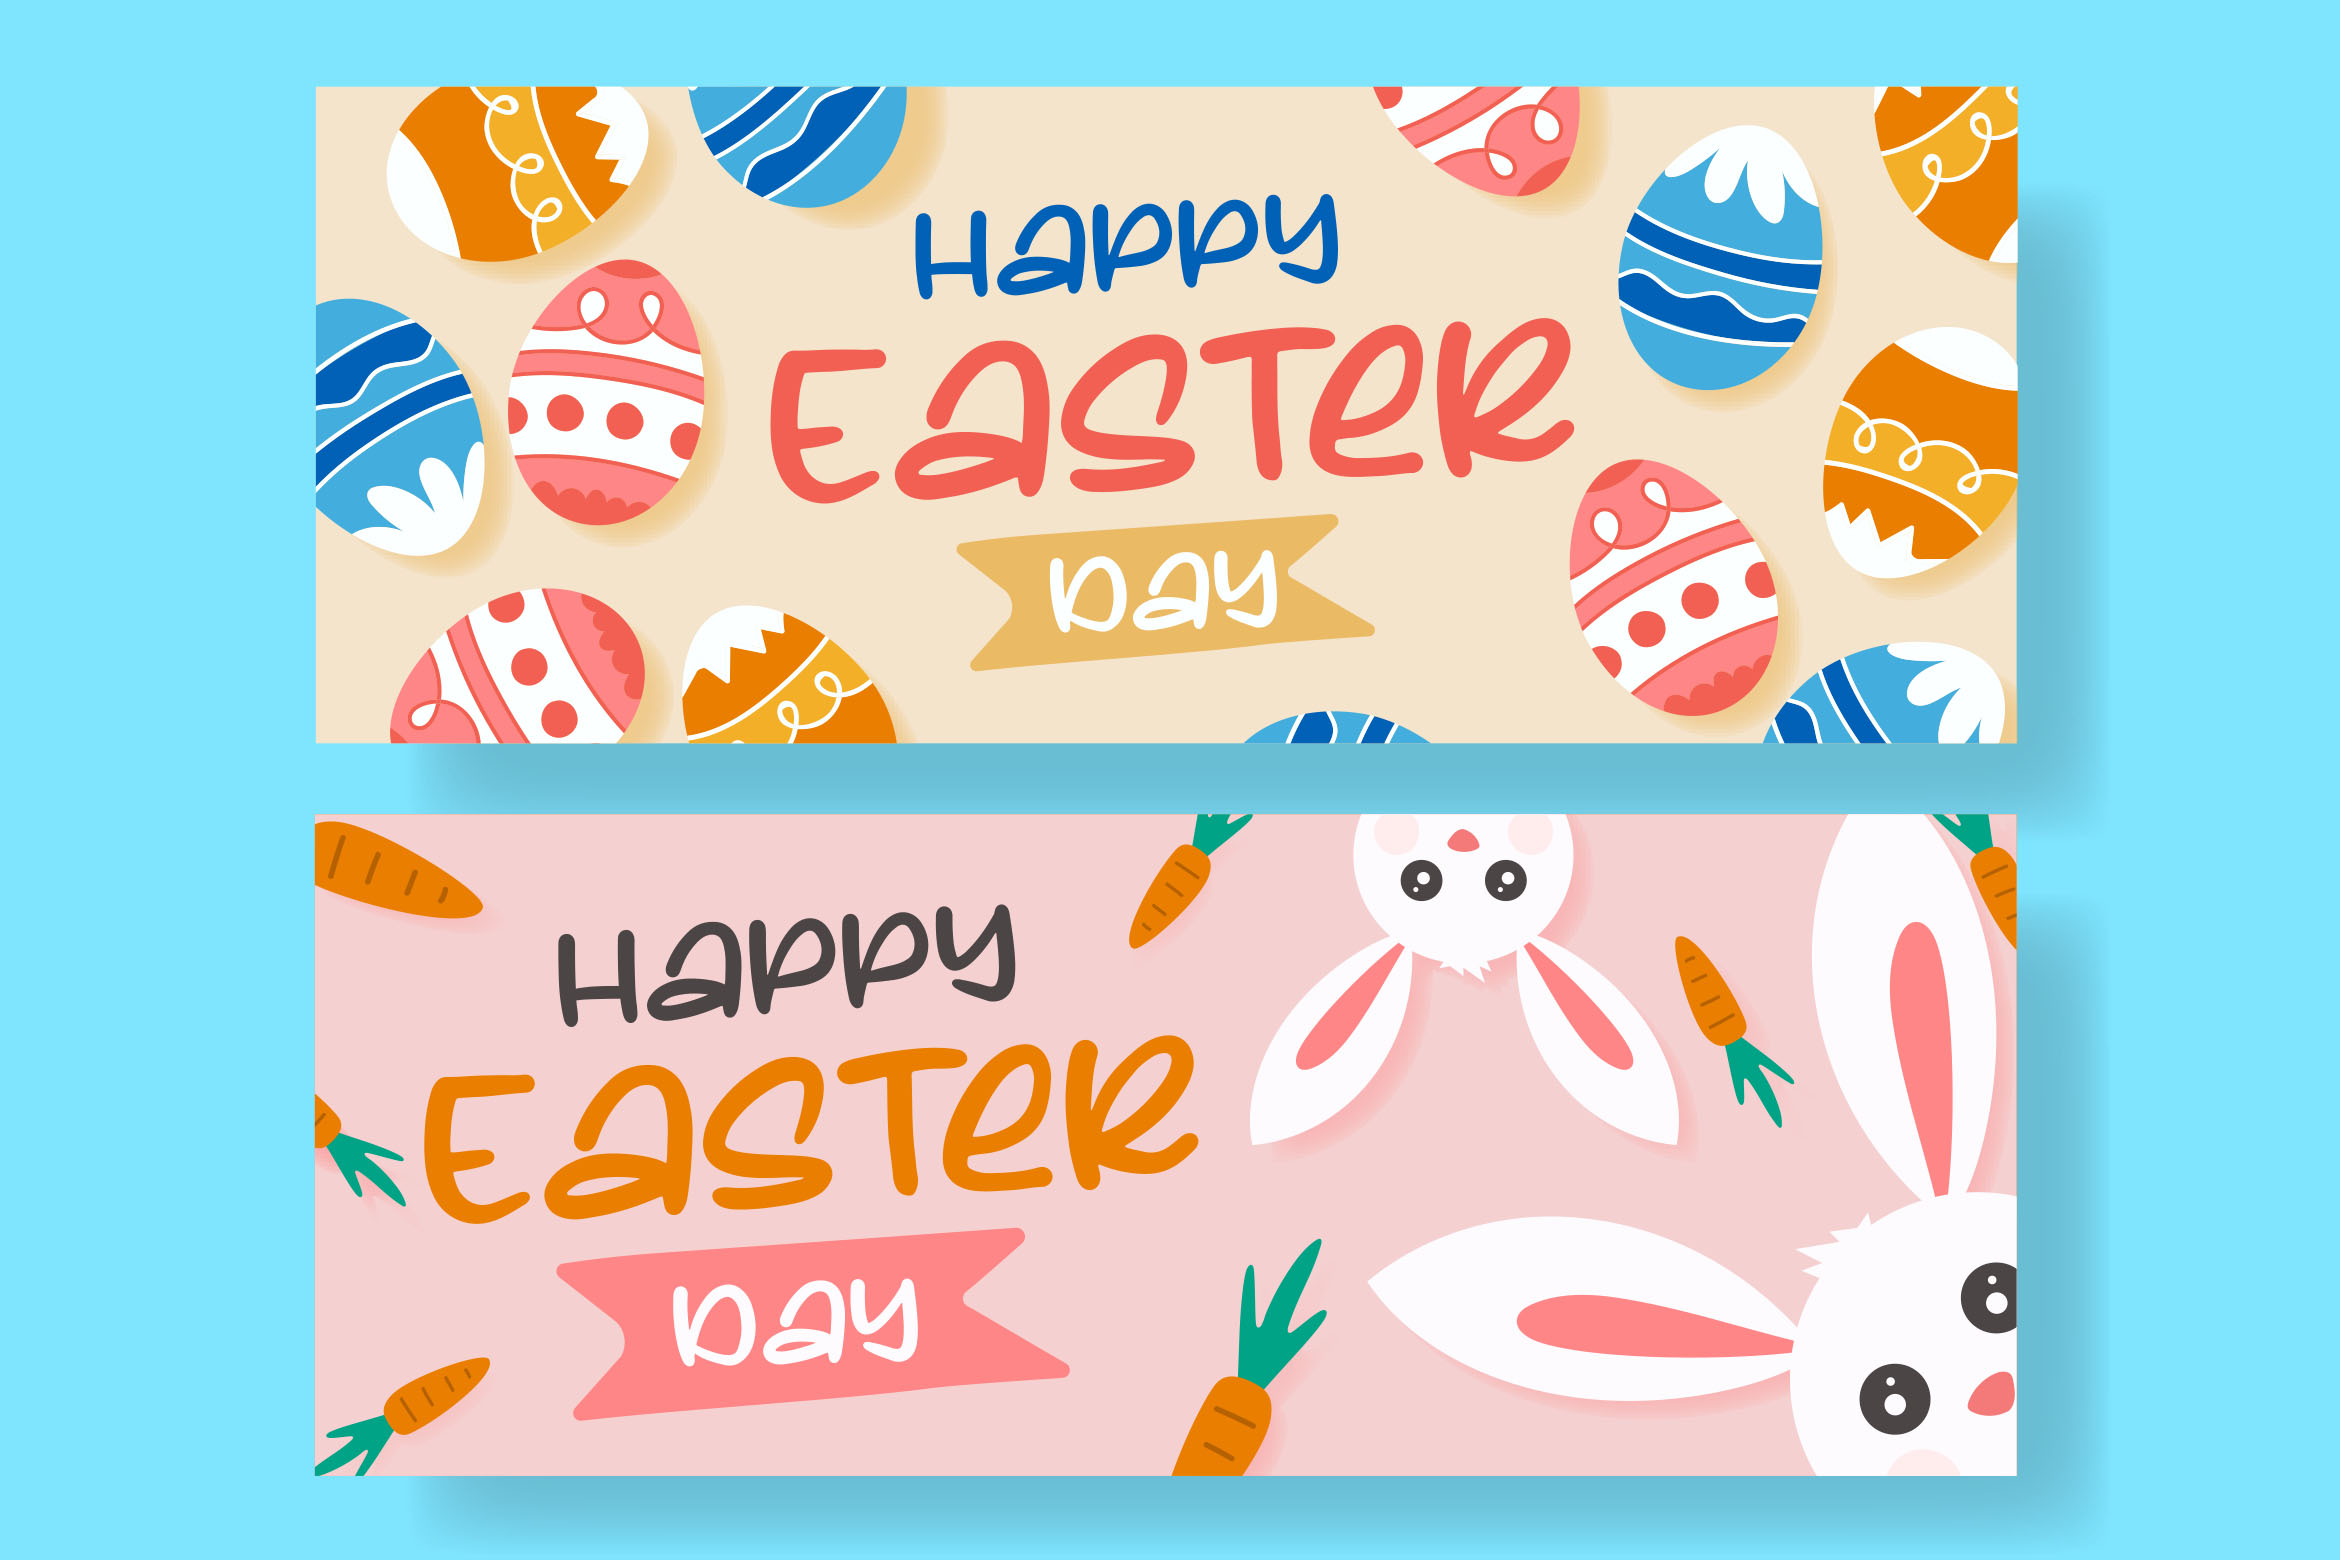 Bunny Berlie - a Cute Rounded Font example image 4